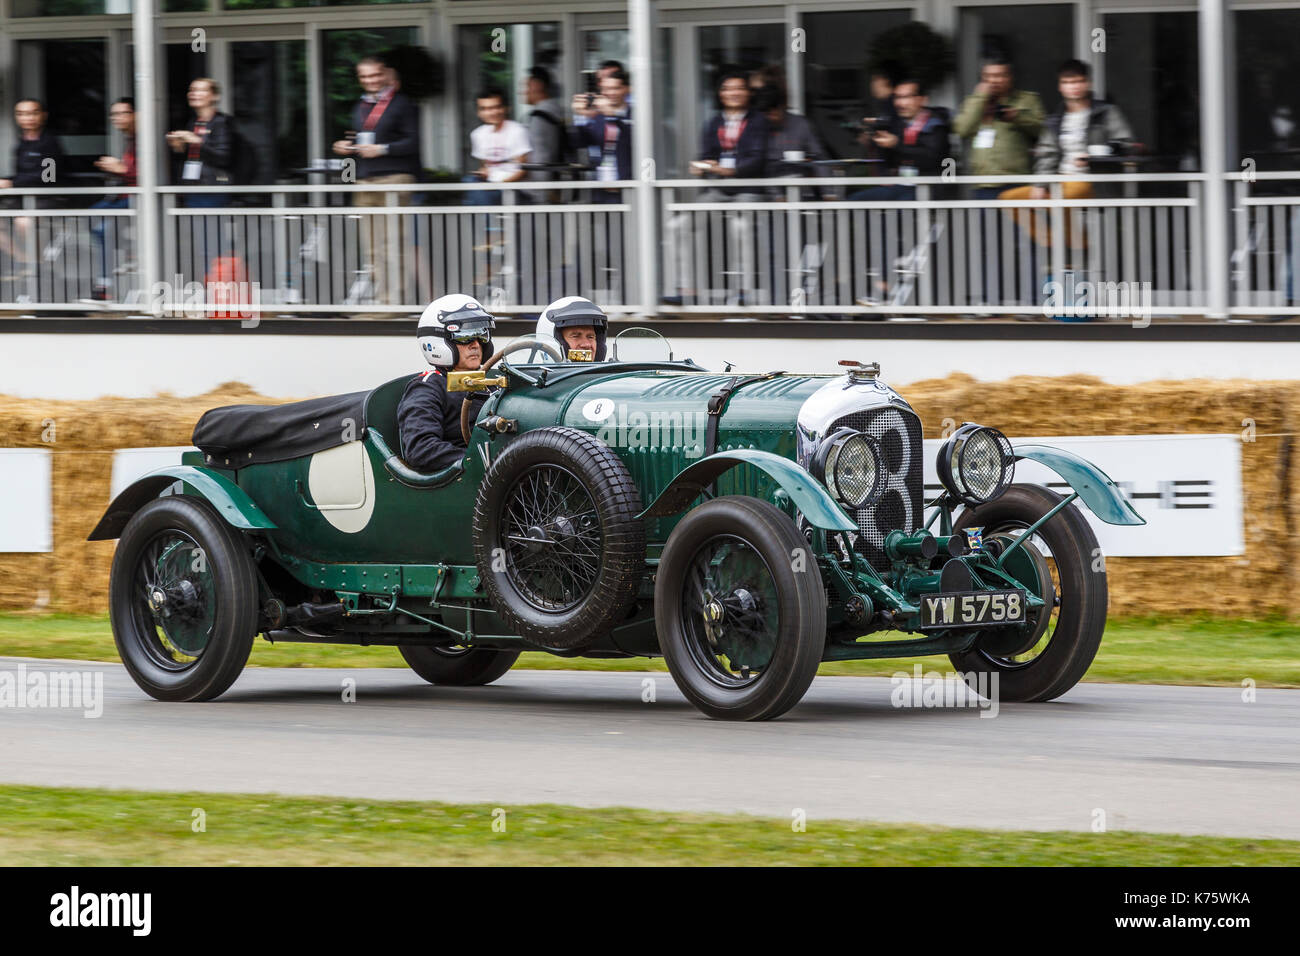 1929 Bentley 4.5 litre Brooklands racer with driver Ian Andrews at the 2017 Goodwood Festival of Speed, Sussex, UK. - Stock Image